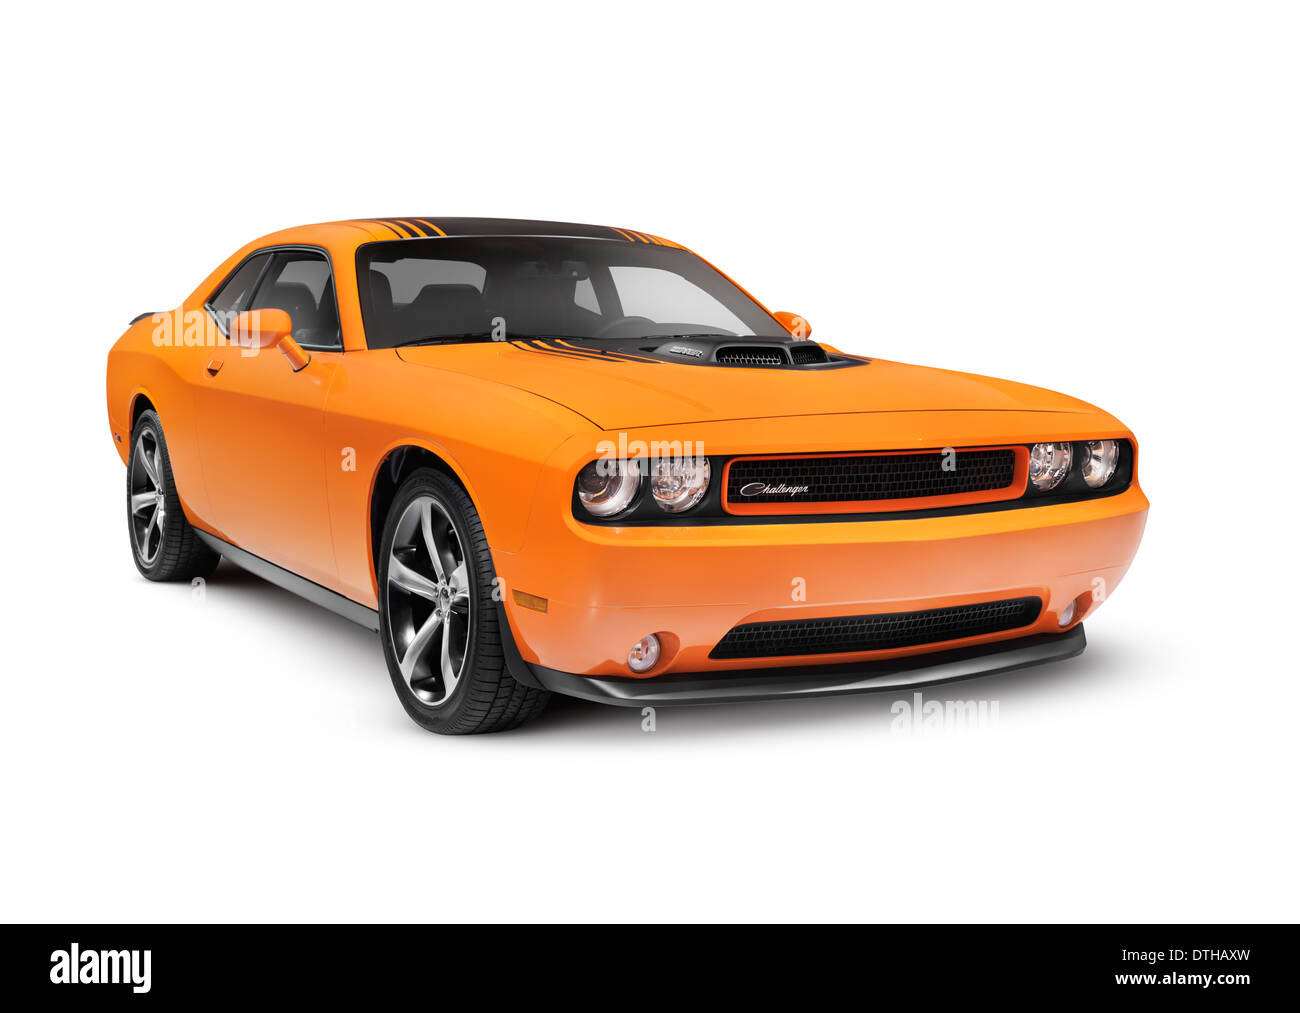 Orange 2014 Dodge Challenger muscle car isolated on white background with clipping path - Stock Image